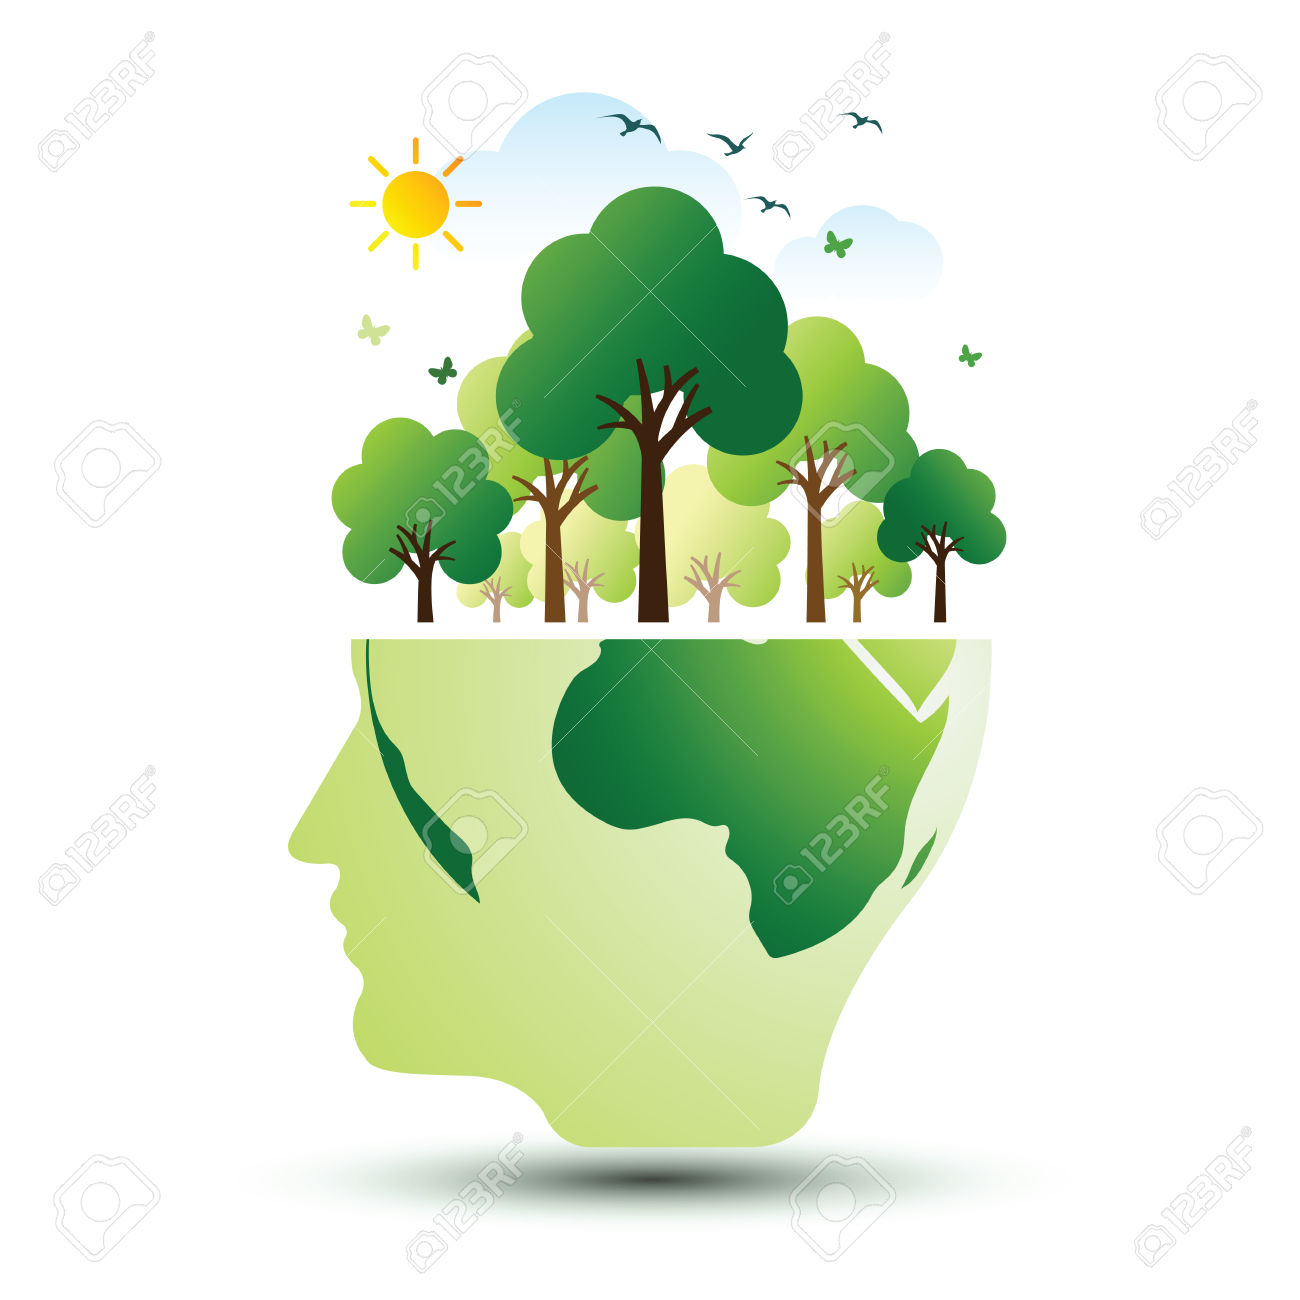 Think Green Ecology Concept. Save World Vector Illustration.